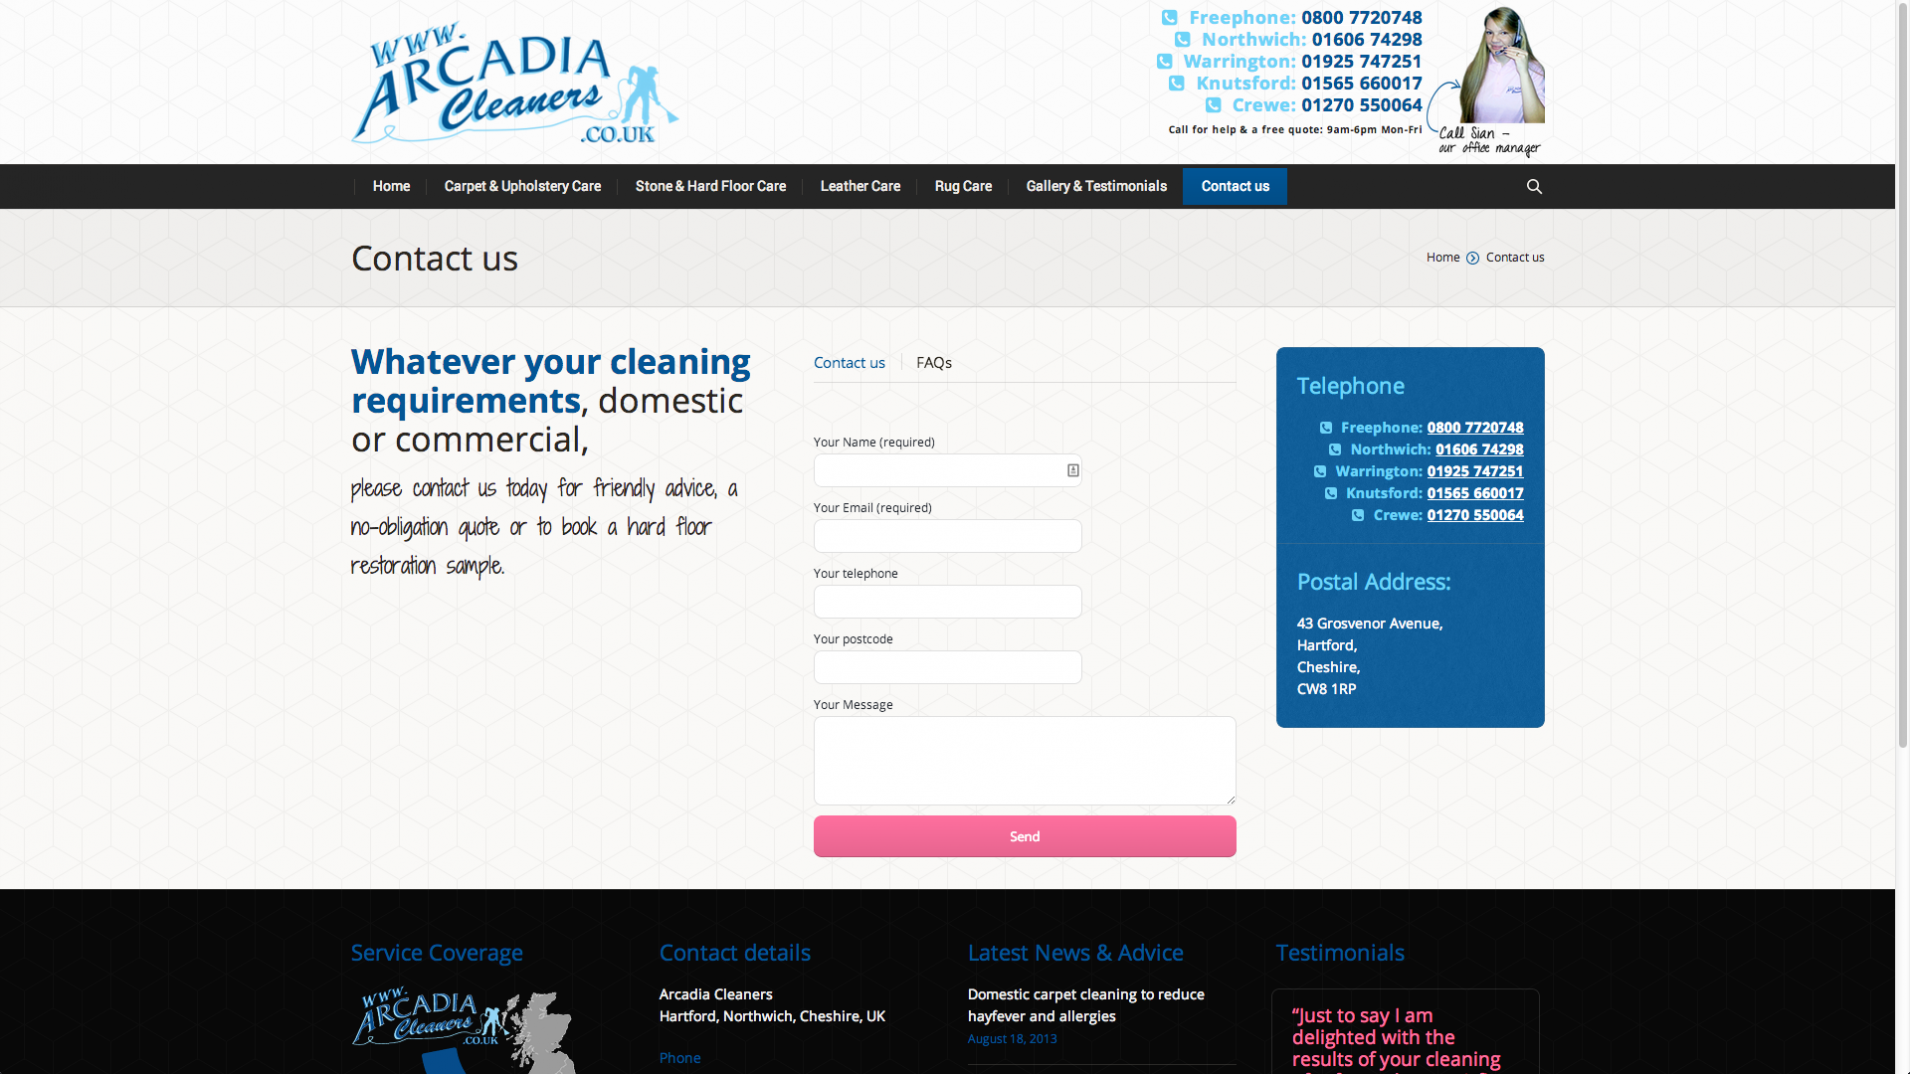 Screen Shot 2013 12 23 at 16.21.03 - Website design for Cheshire based carpet, upholstery and floor cleaning company